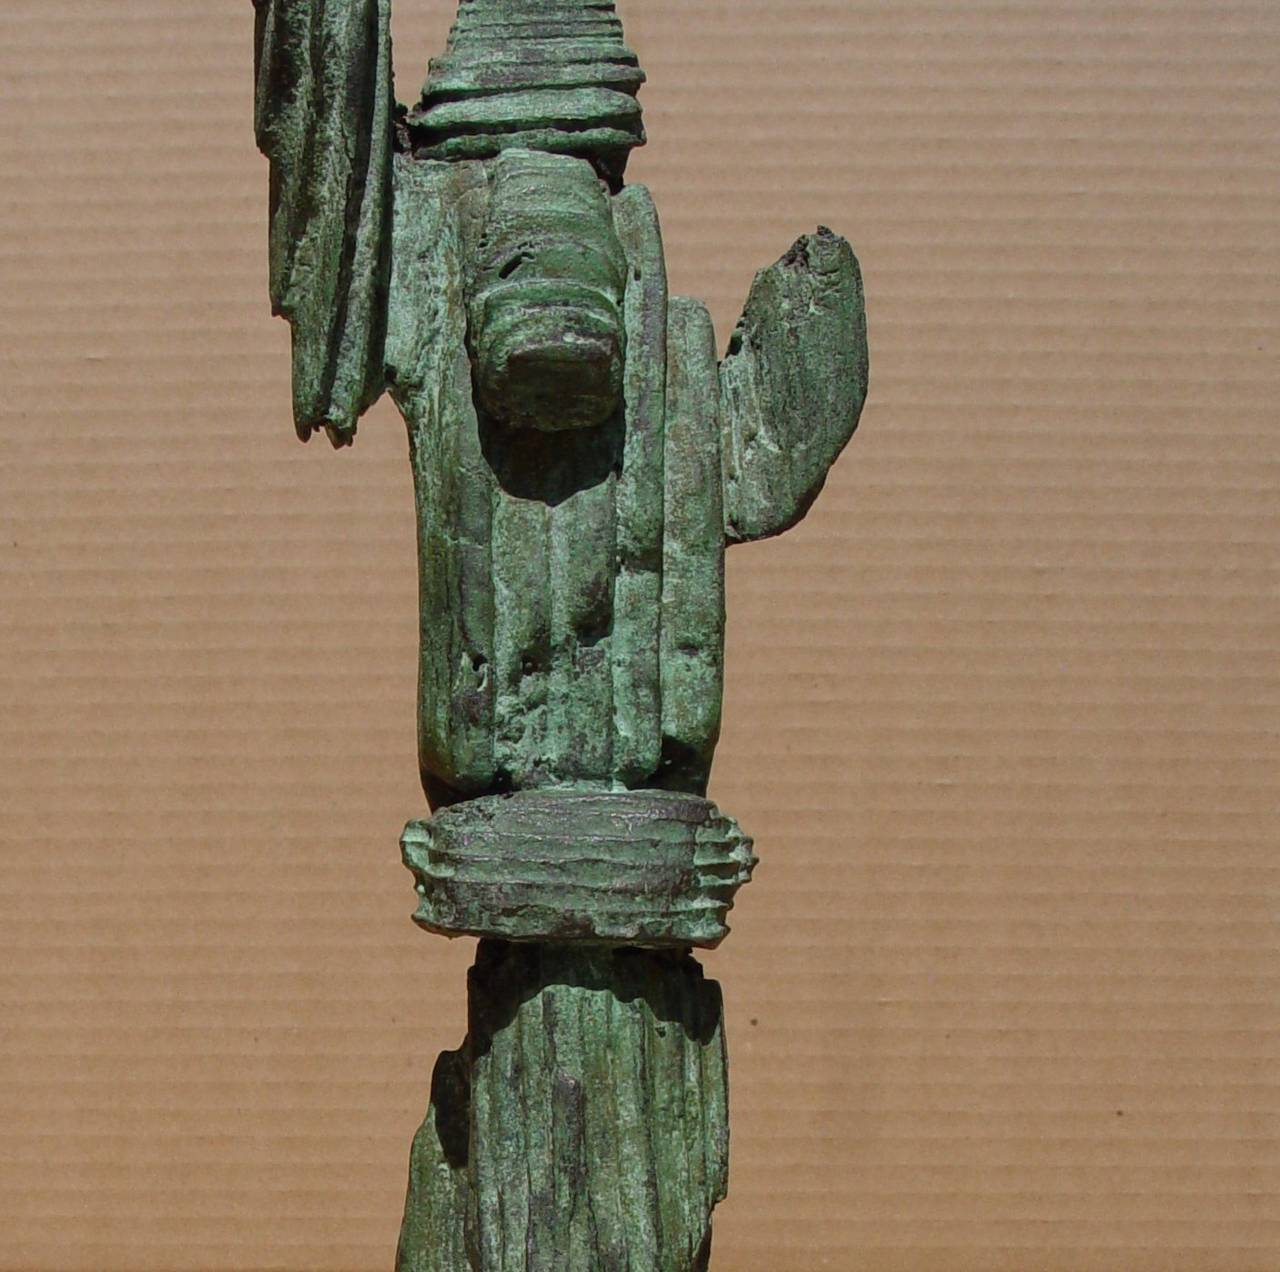 MIRKO BASALDELLA (1910-1969) Totem, c. 1958 Bronze with green patina 13 x 1 5/8 x 1 1/4 inches Unsigned  PROVENANCE  Estate of Gyorgy Kepes  Mirko Basaldella was considered one of the most significant Italian sculptors of the twentieth century. He